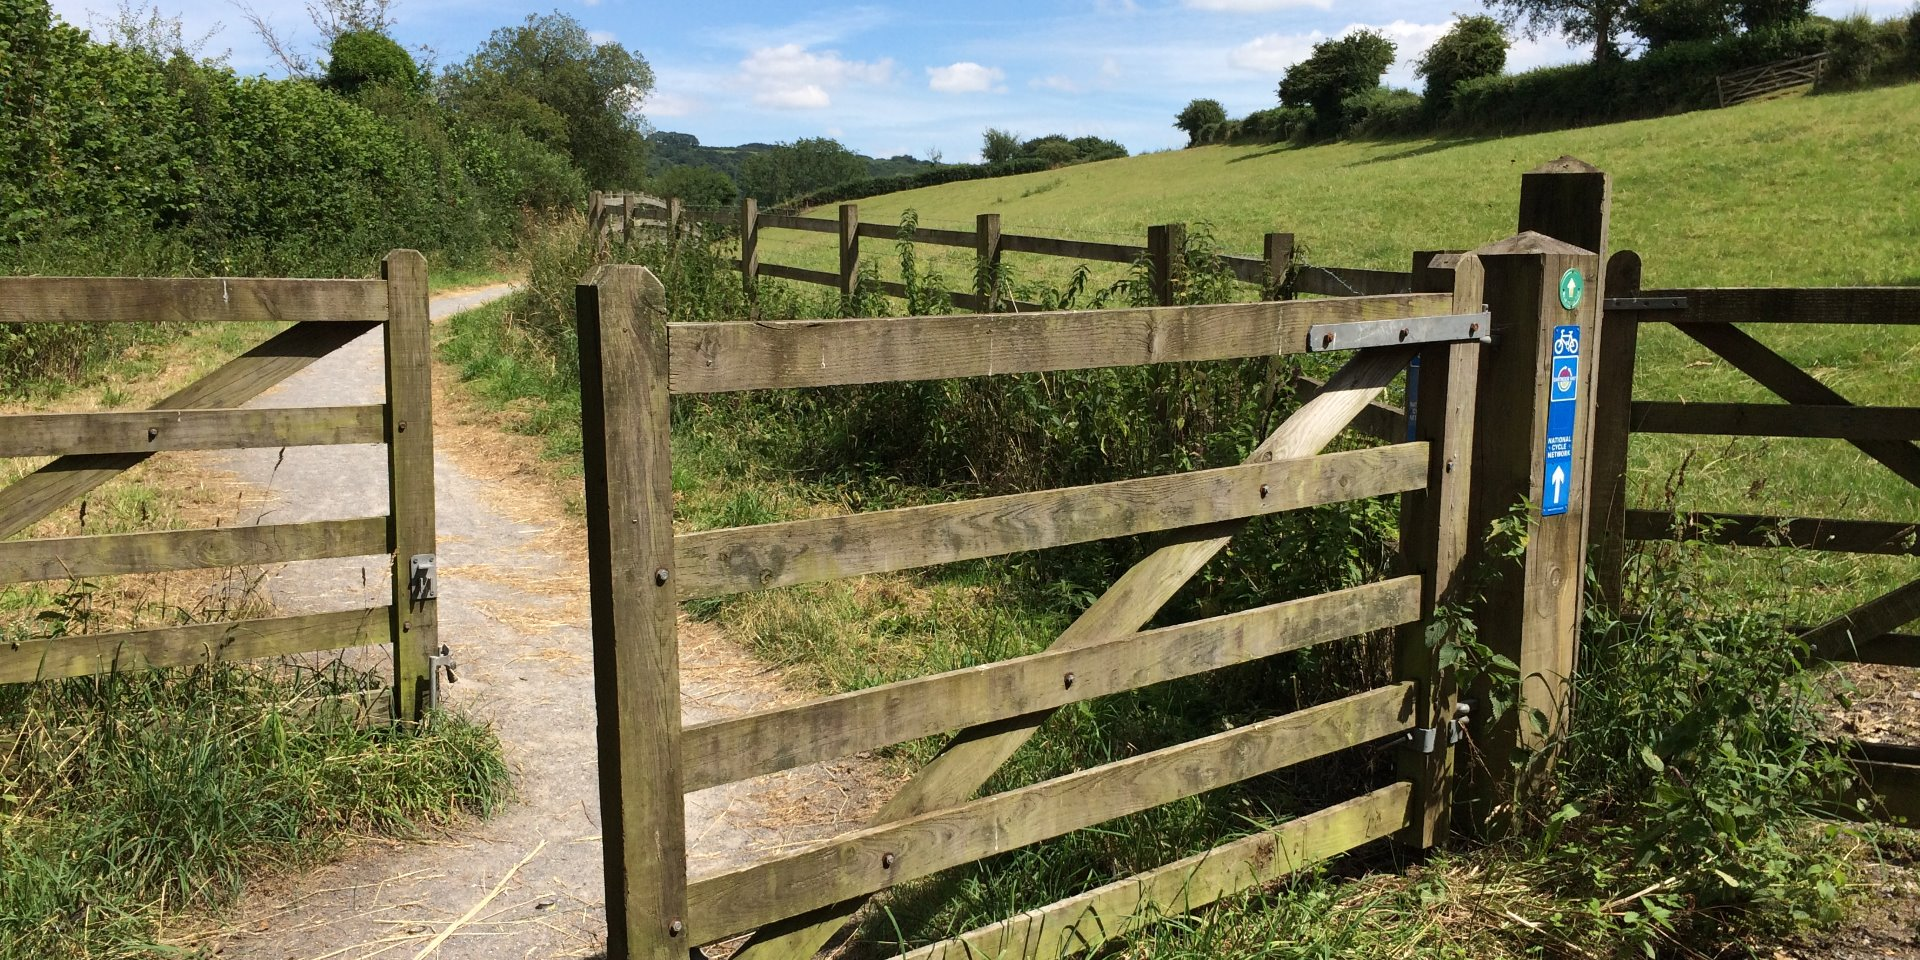 Photo of the footpath and gate at the start of the Wray Valley Trail at Moretonhampstead